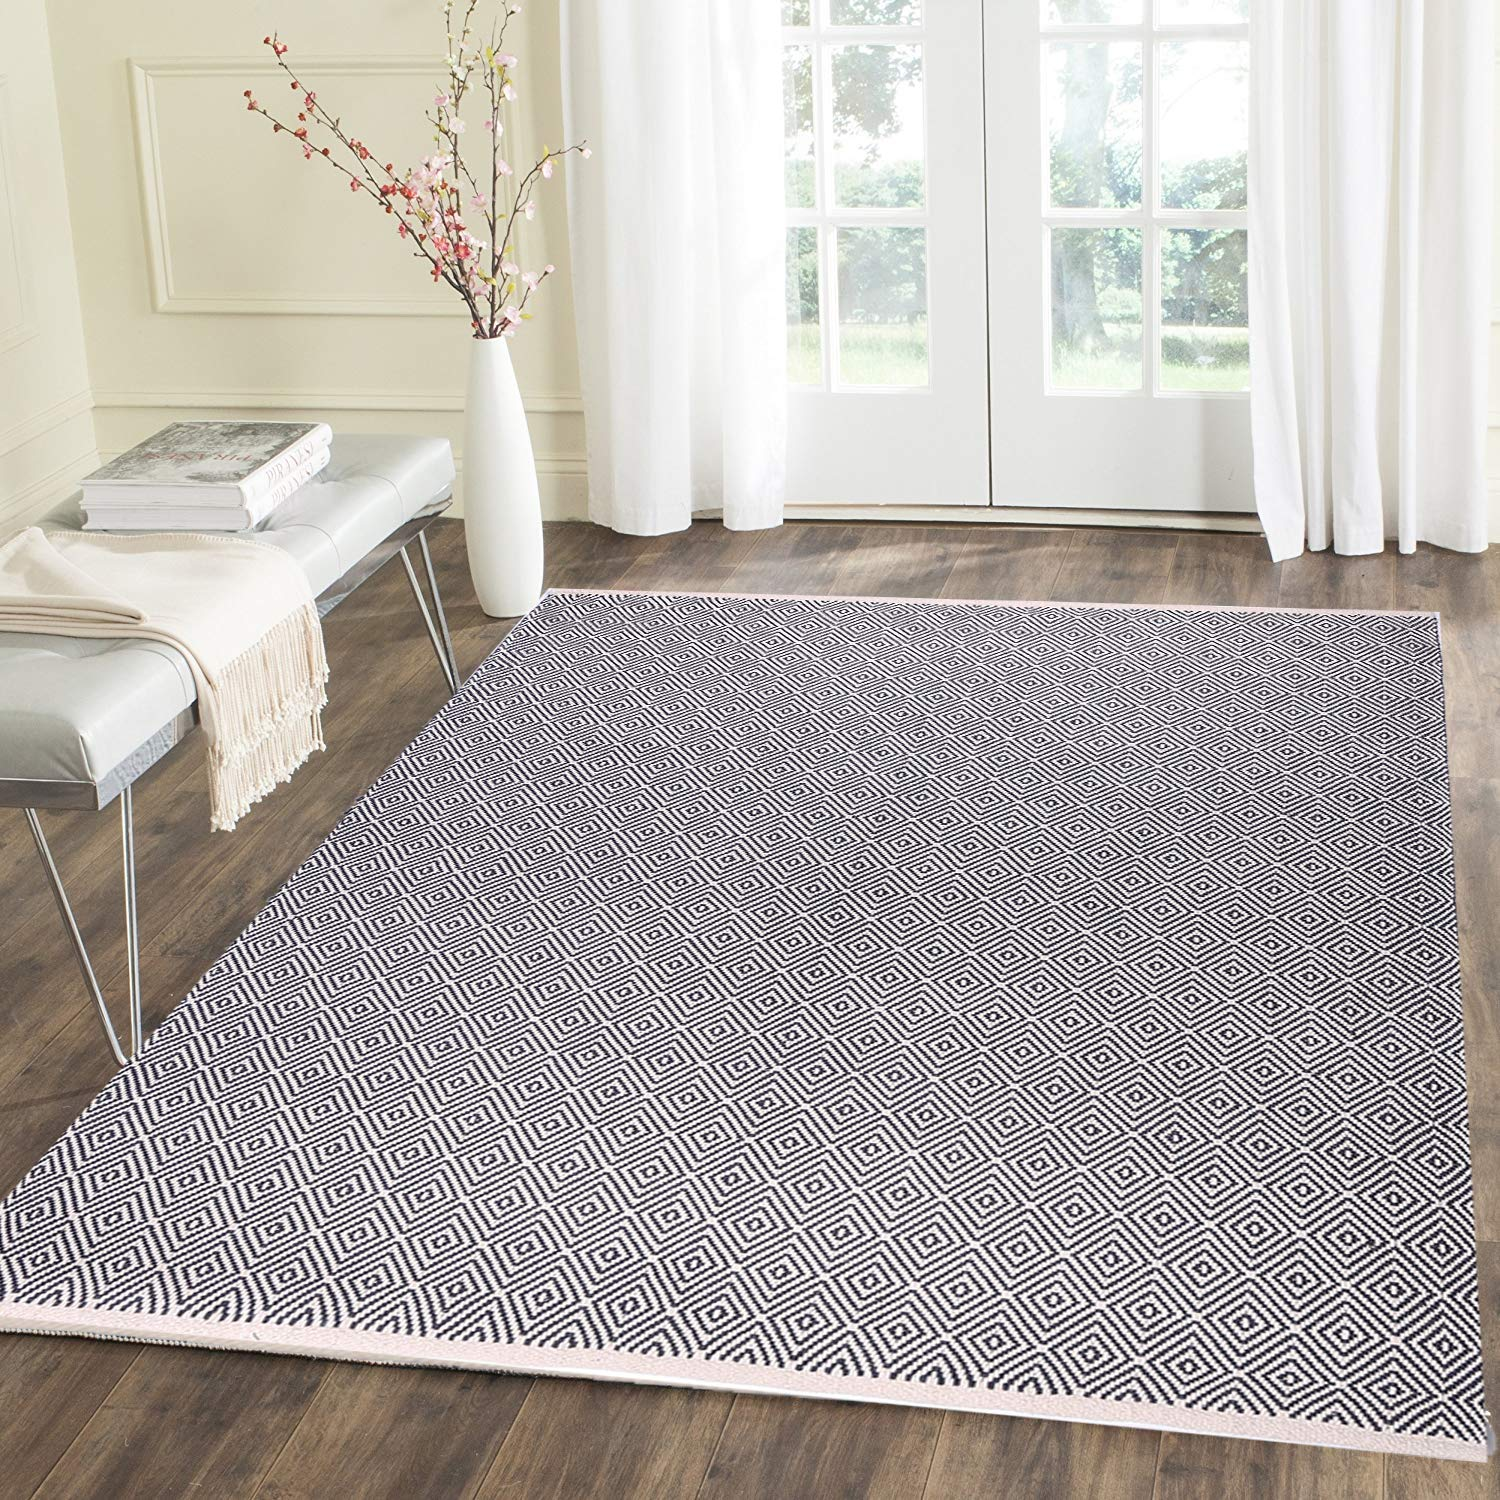 HEBE Cotton Area Rug 4' x 6' Machine Washable Reversible Indoor Area Rug/Mat Hand Woven Cotton Area Rugs for Living Room, Bedroom, Laundry Room, Entryway